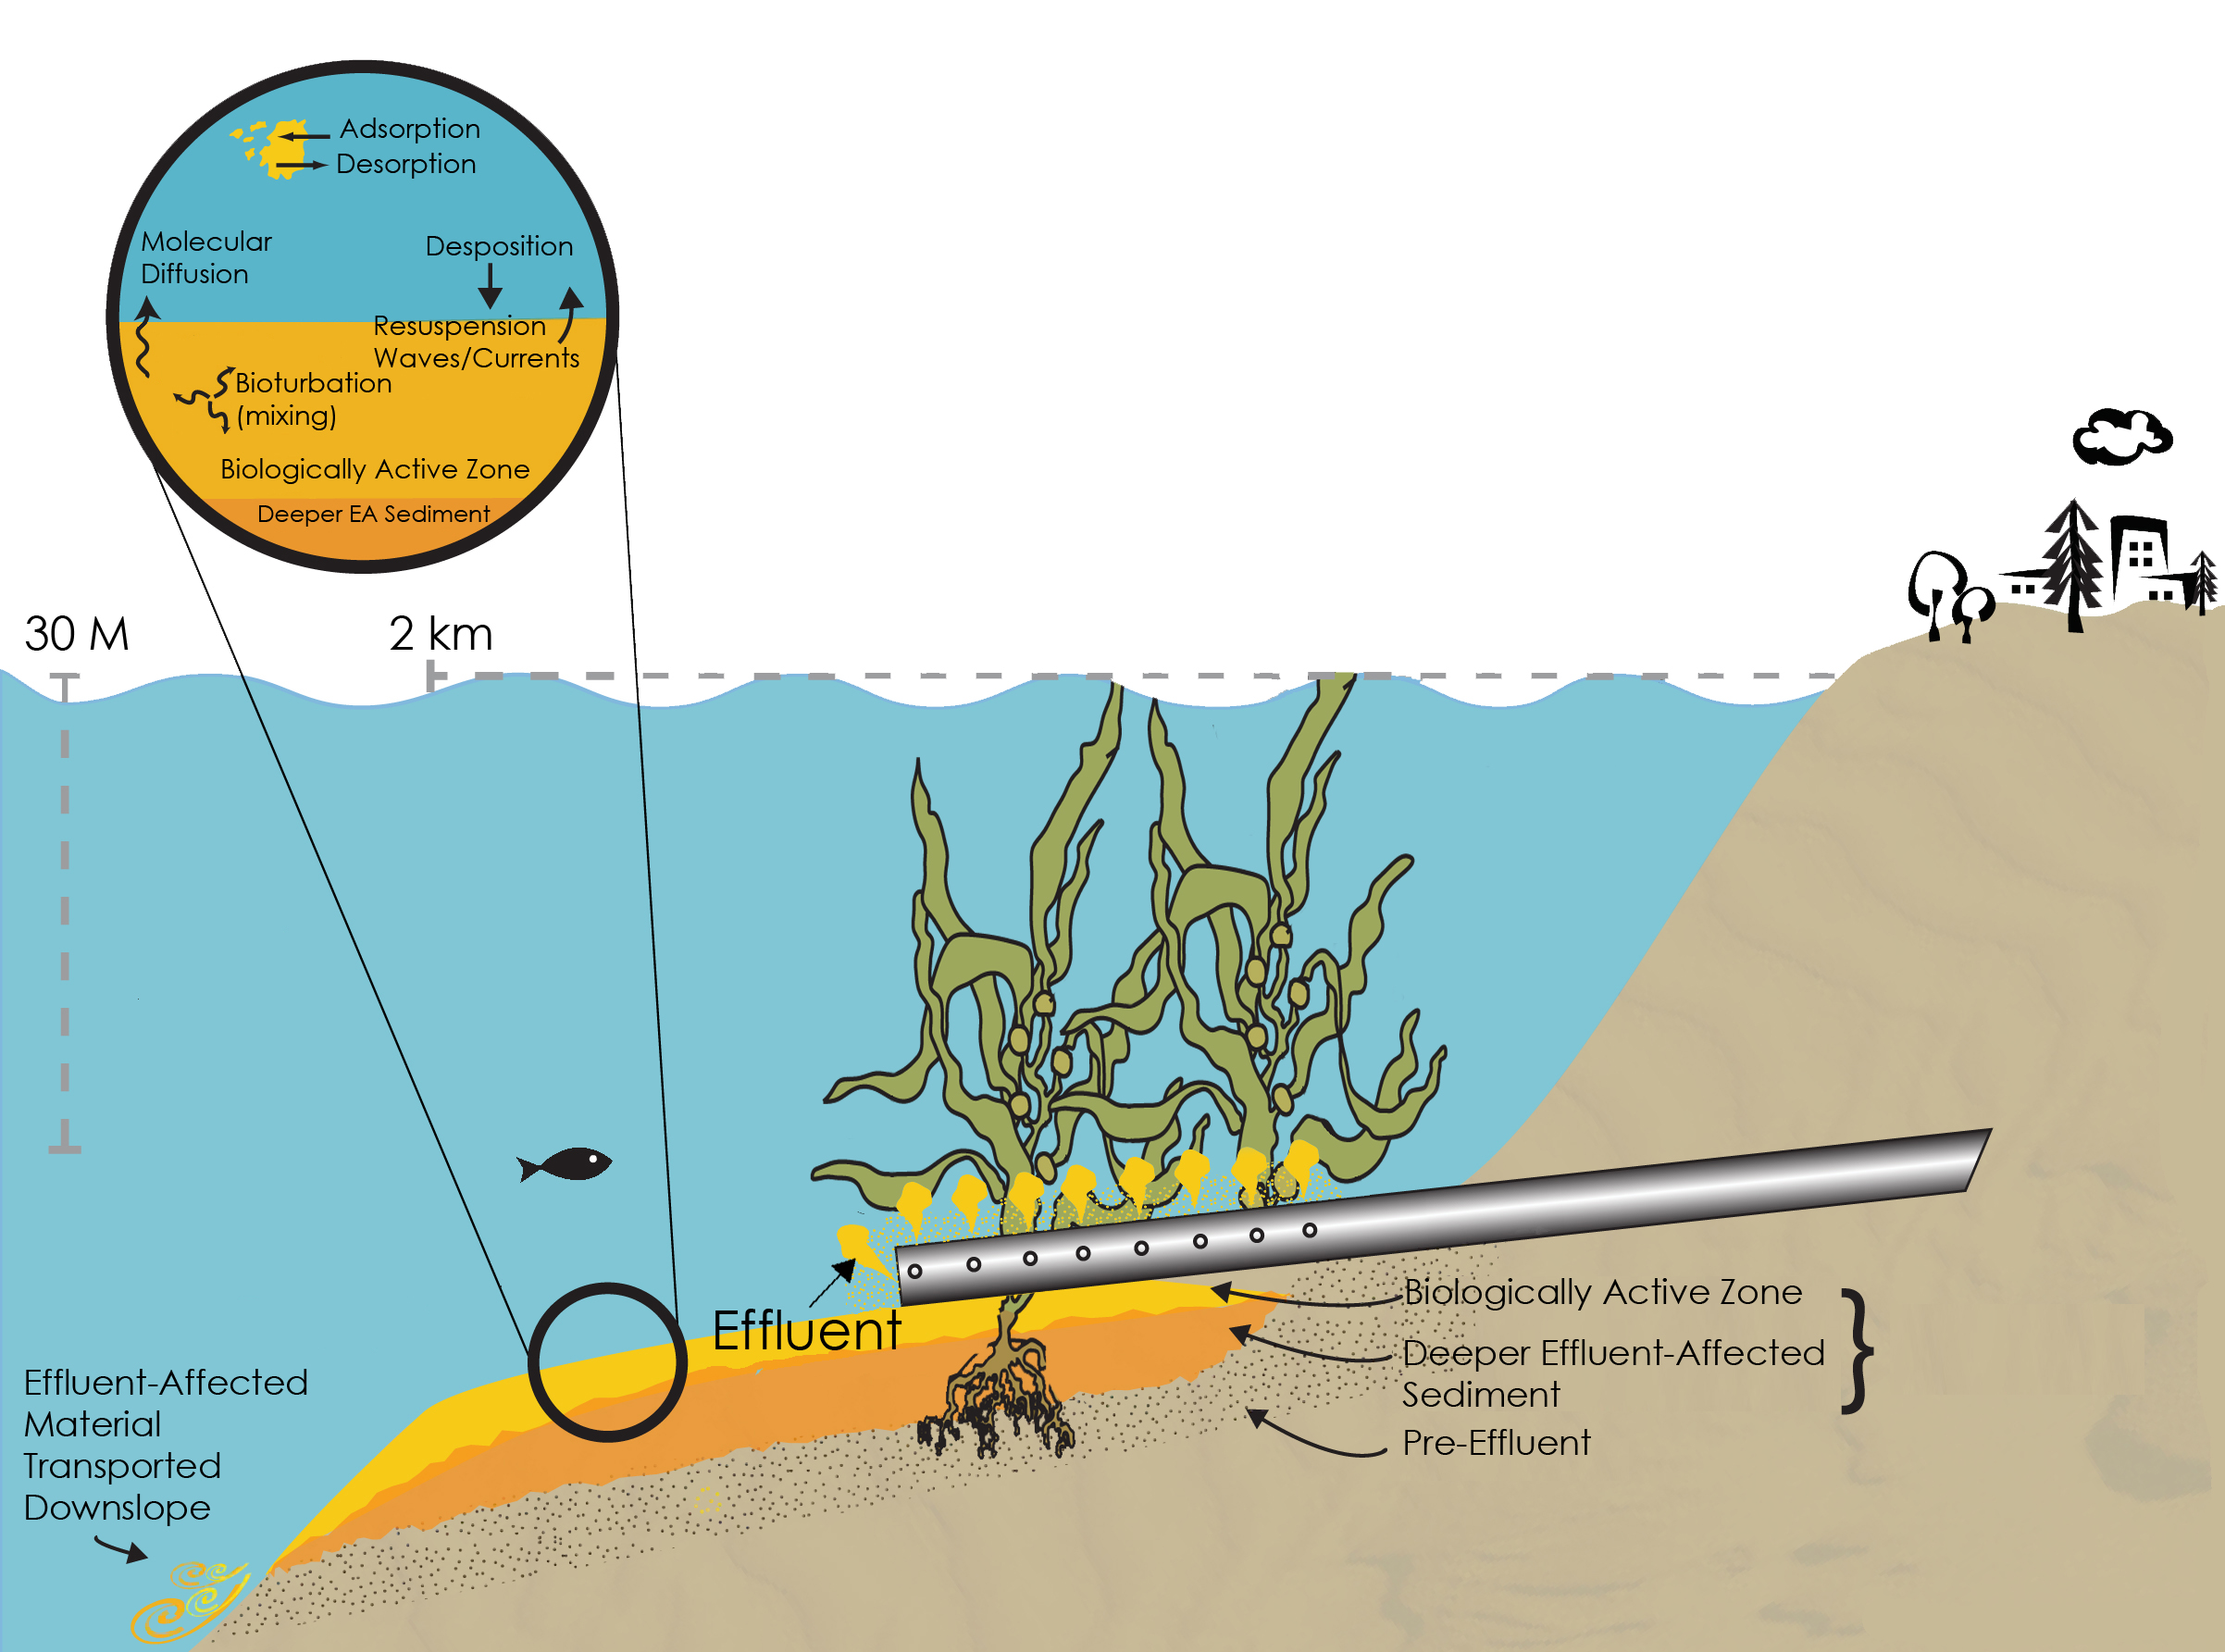 kelp forest diagram 1978 international scout ii wiring palos verdes shelf superfund site